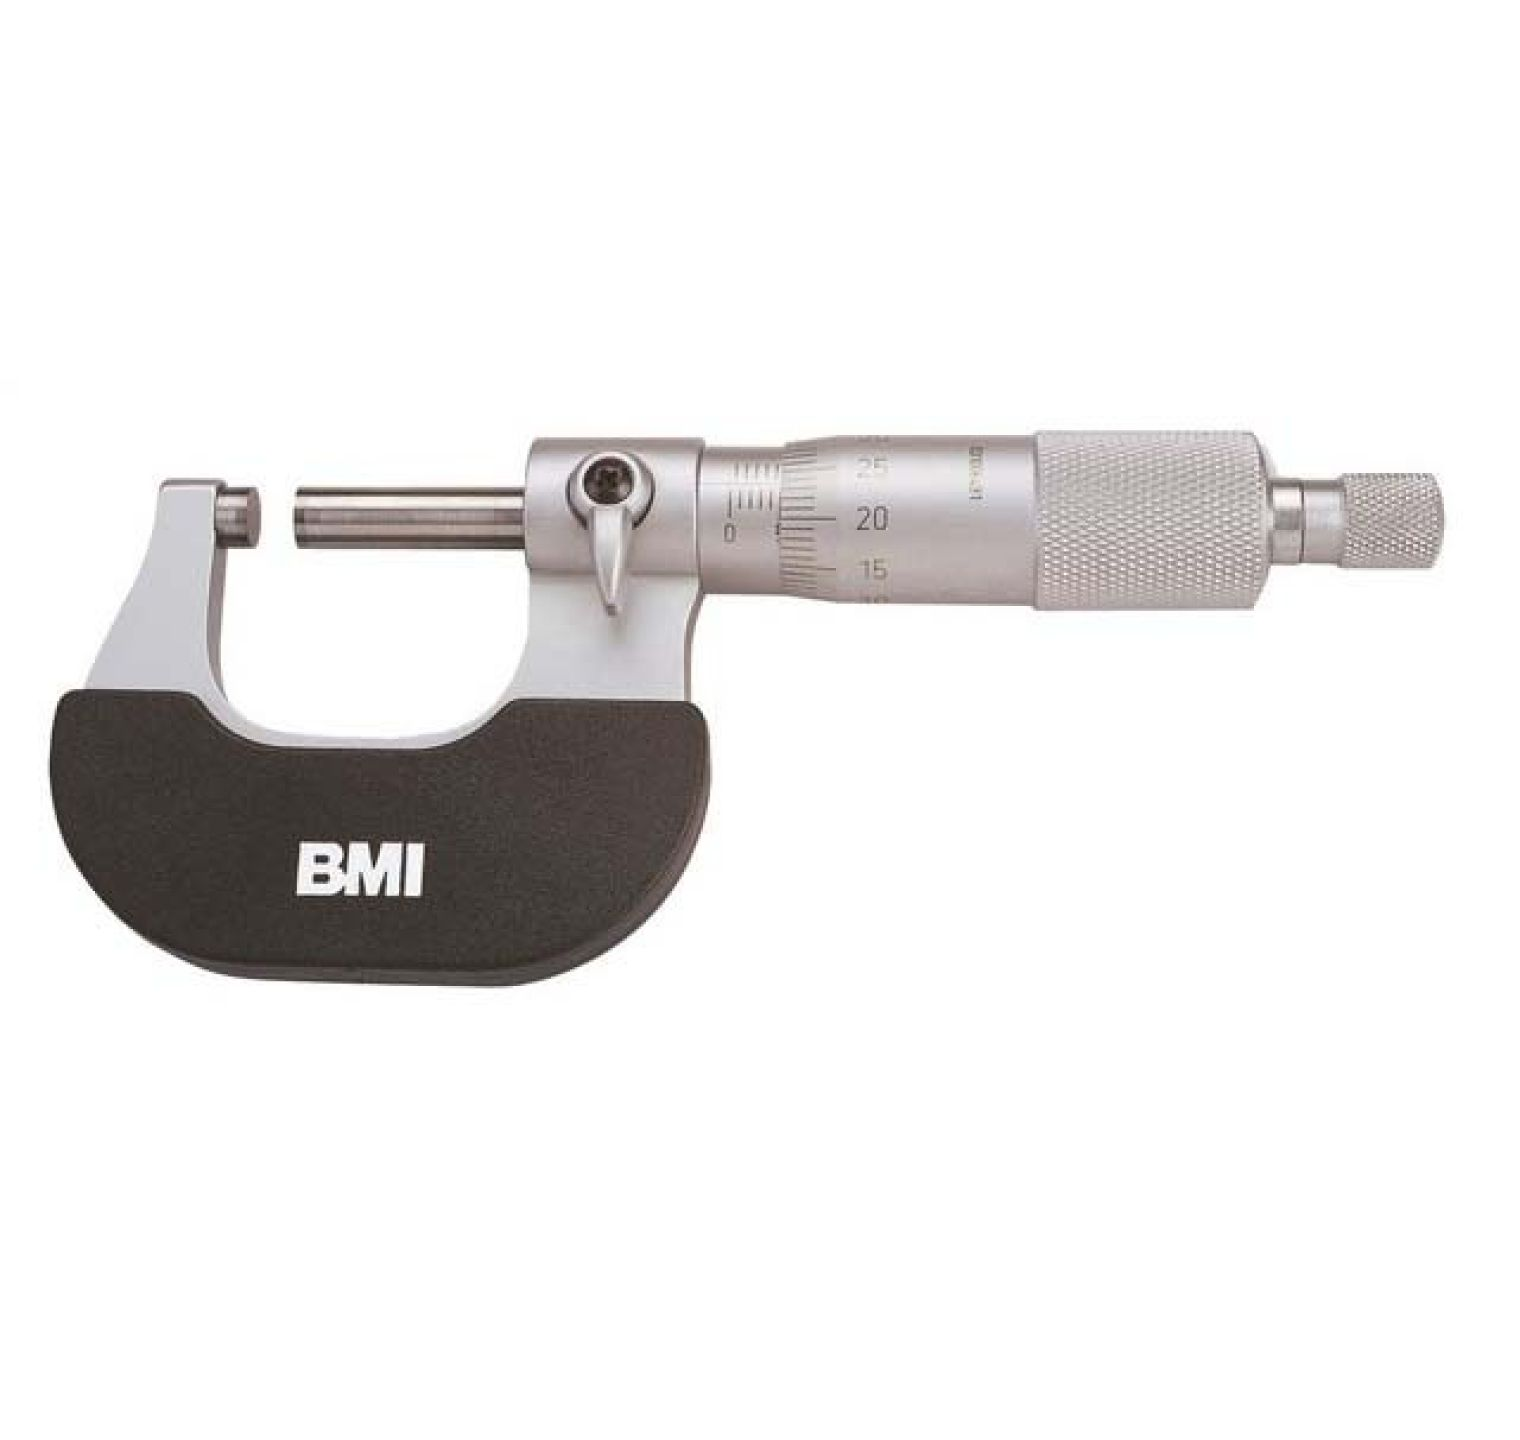 Bmi Micrometer 0 - 25 Mm